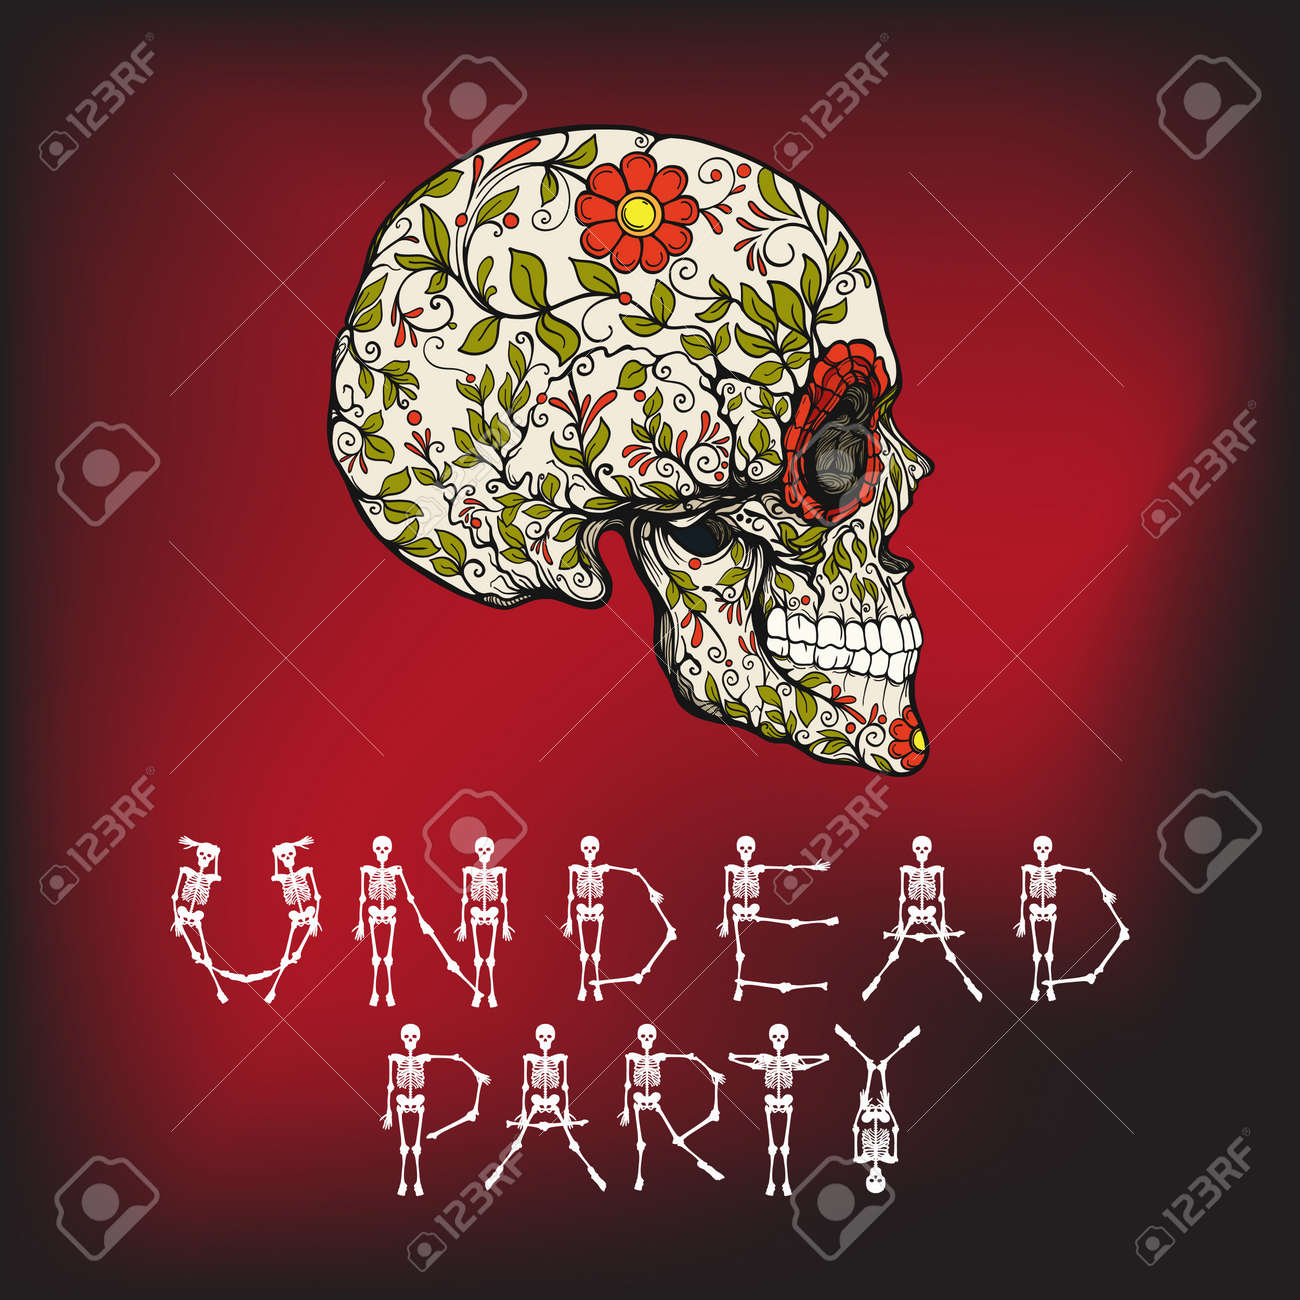 Undead party banner with sugar skull the traditional symbol undead party banner with sugar skull the traditional symbol of the day of the dead buycottarizona Images